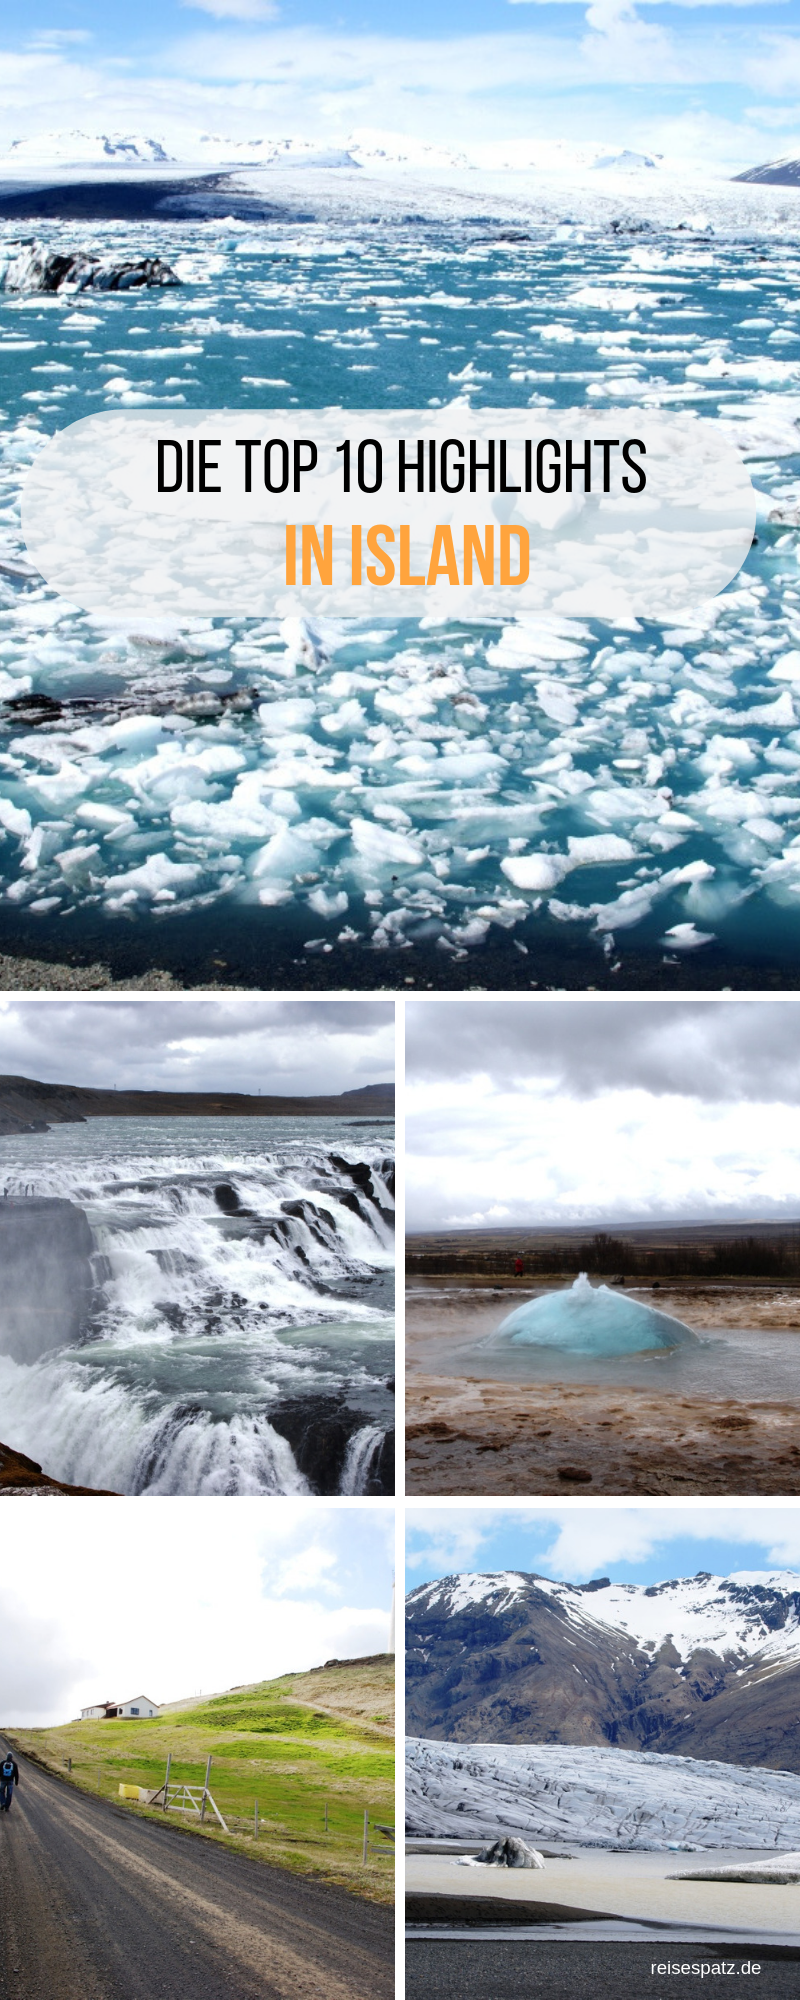 Photo of Top 10 highlights in Iceland for a week travel Spatz